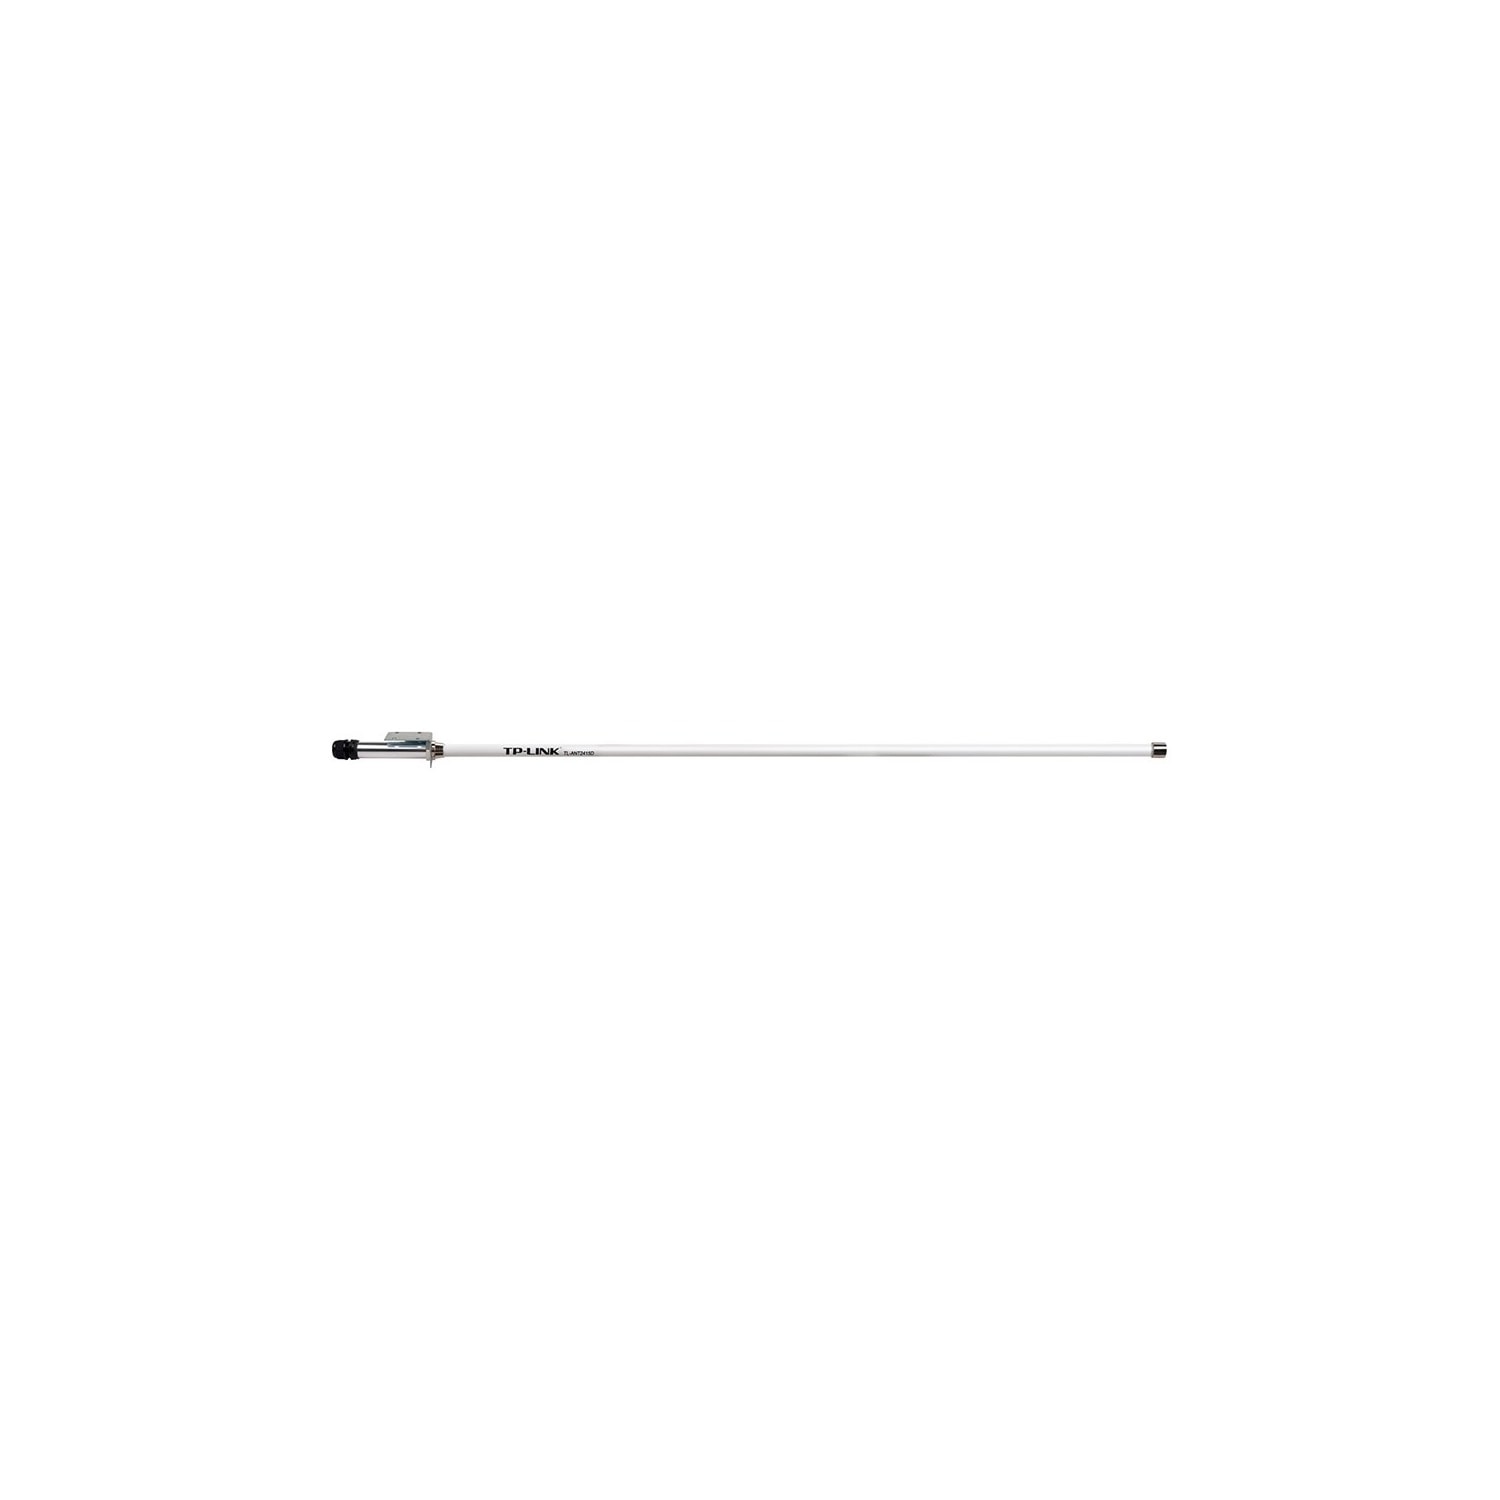 Buy Tp Link Antenna For Wireless Data Network Outdoor Phase 42 Tplink